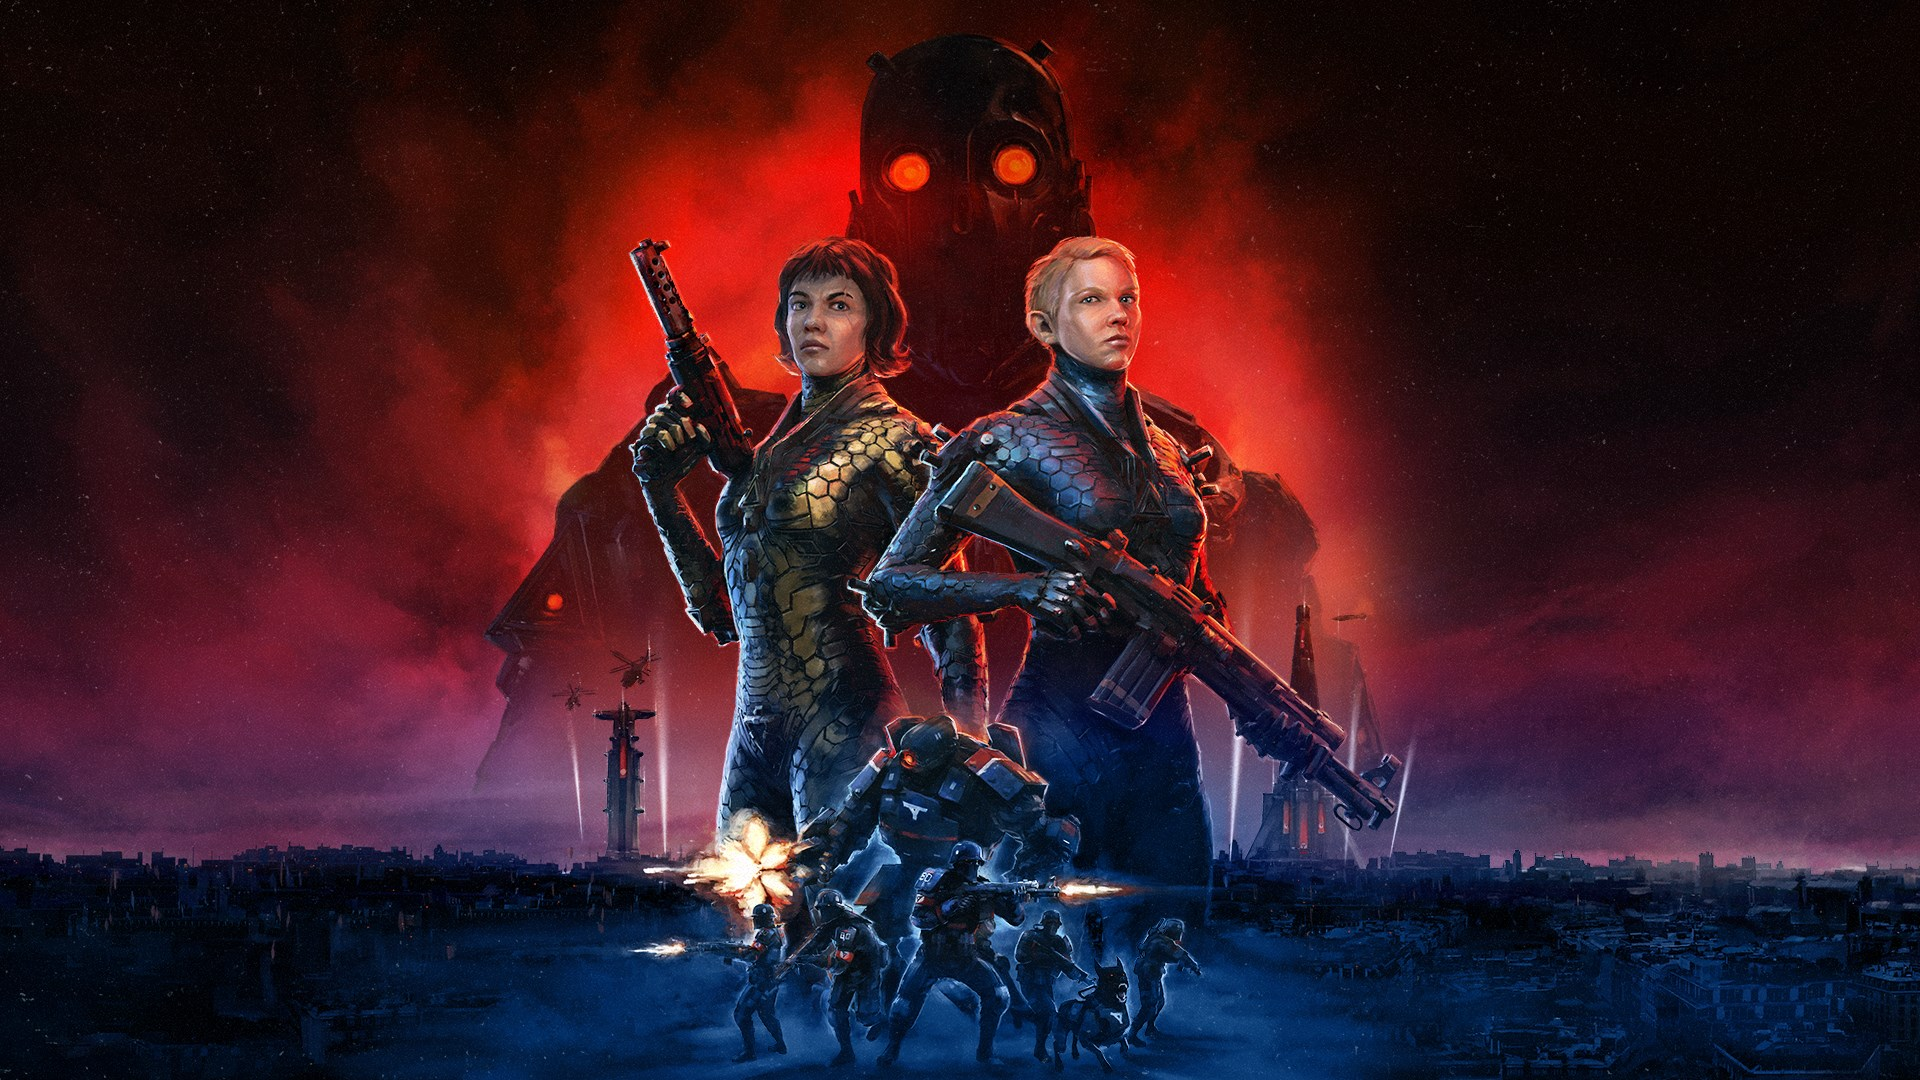 Buy Wolfenstein: Youngblood Deluxe Upgrade - Microsoft Store